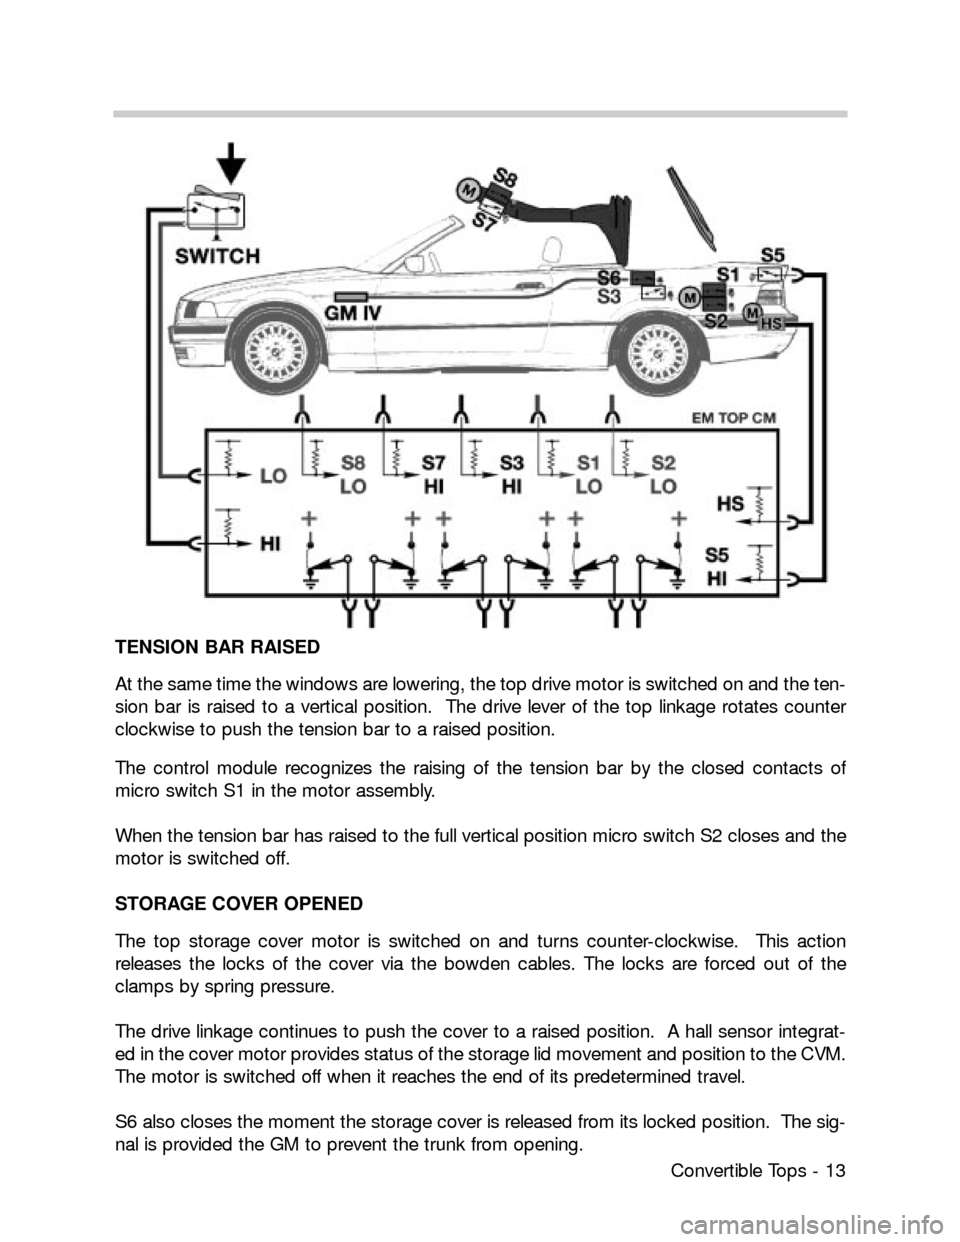 BMW Z3 CONVERTIBLE 1995 E36 Convertible Tops Manual, Page 13